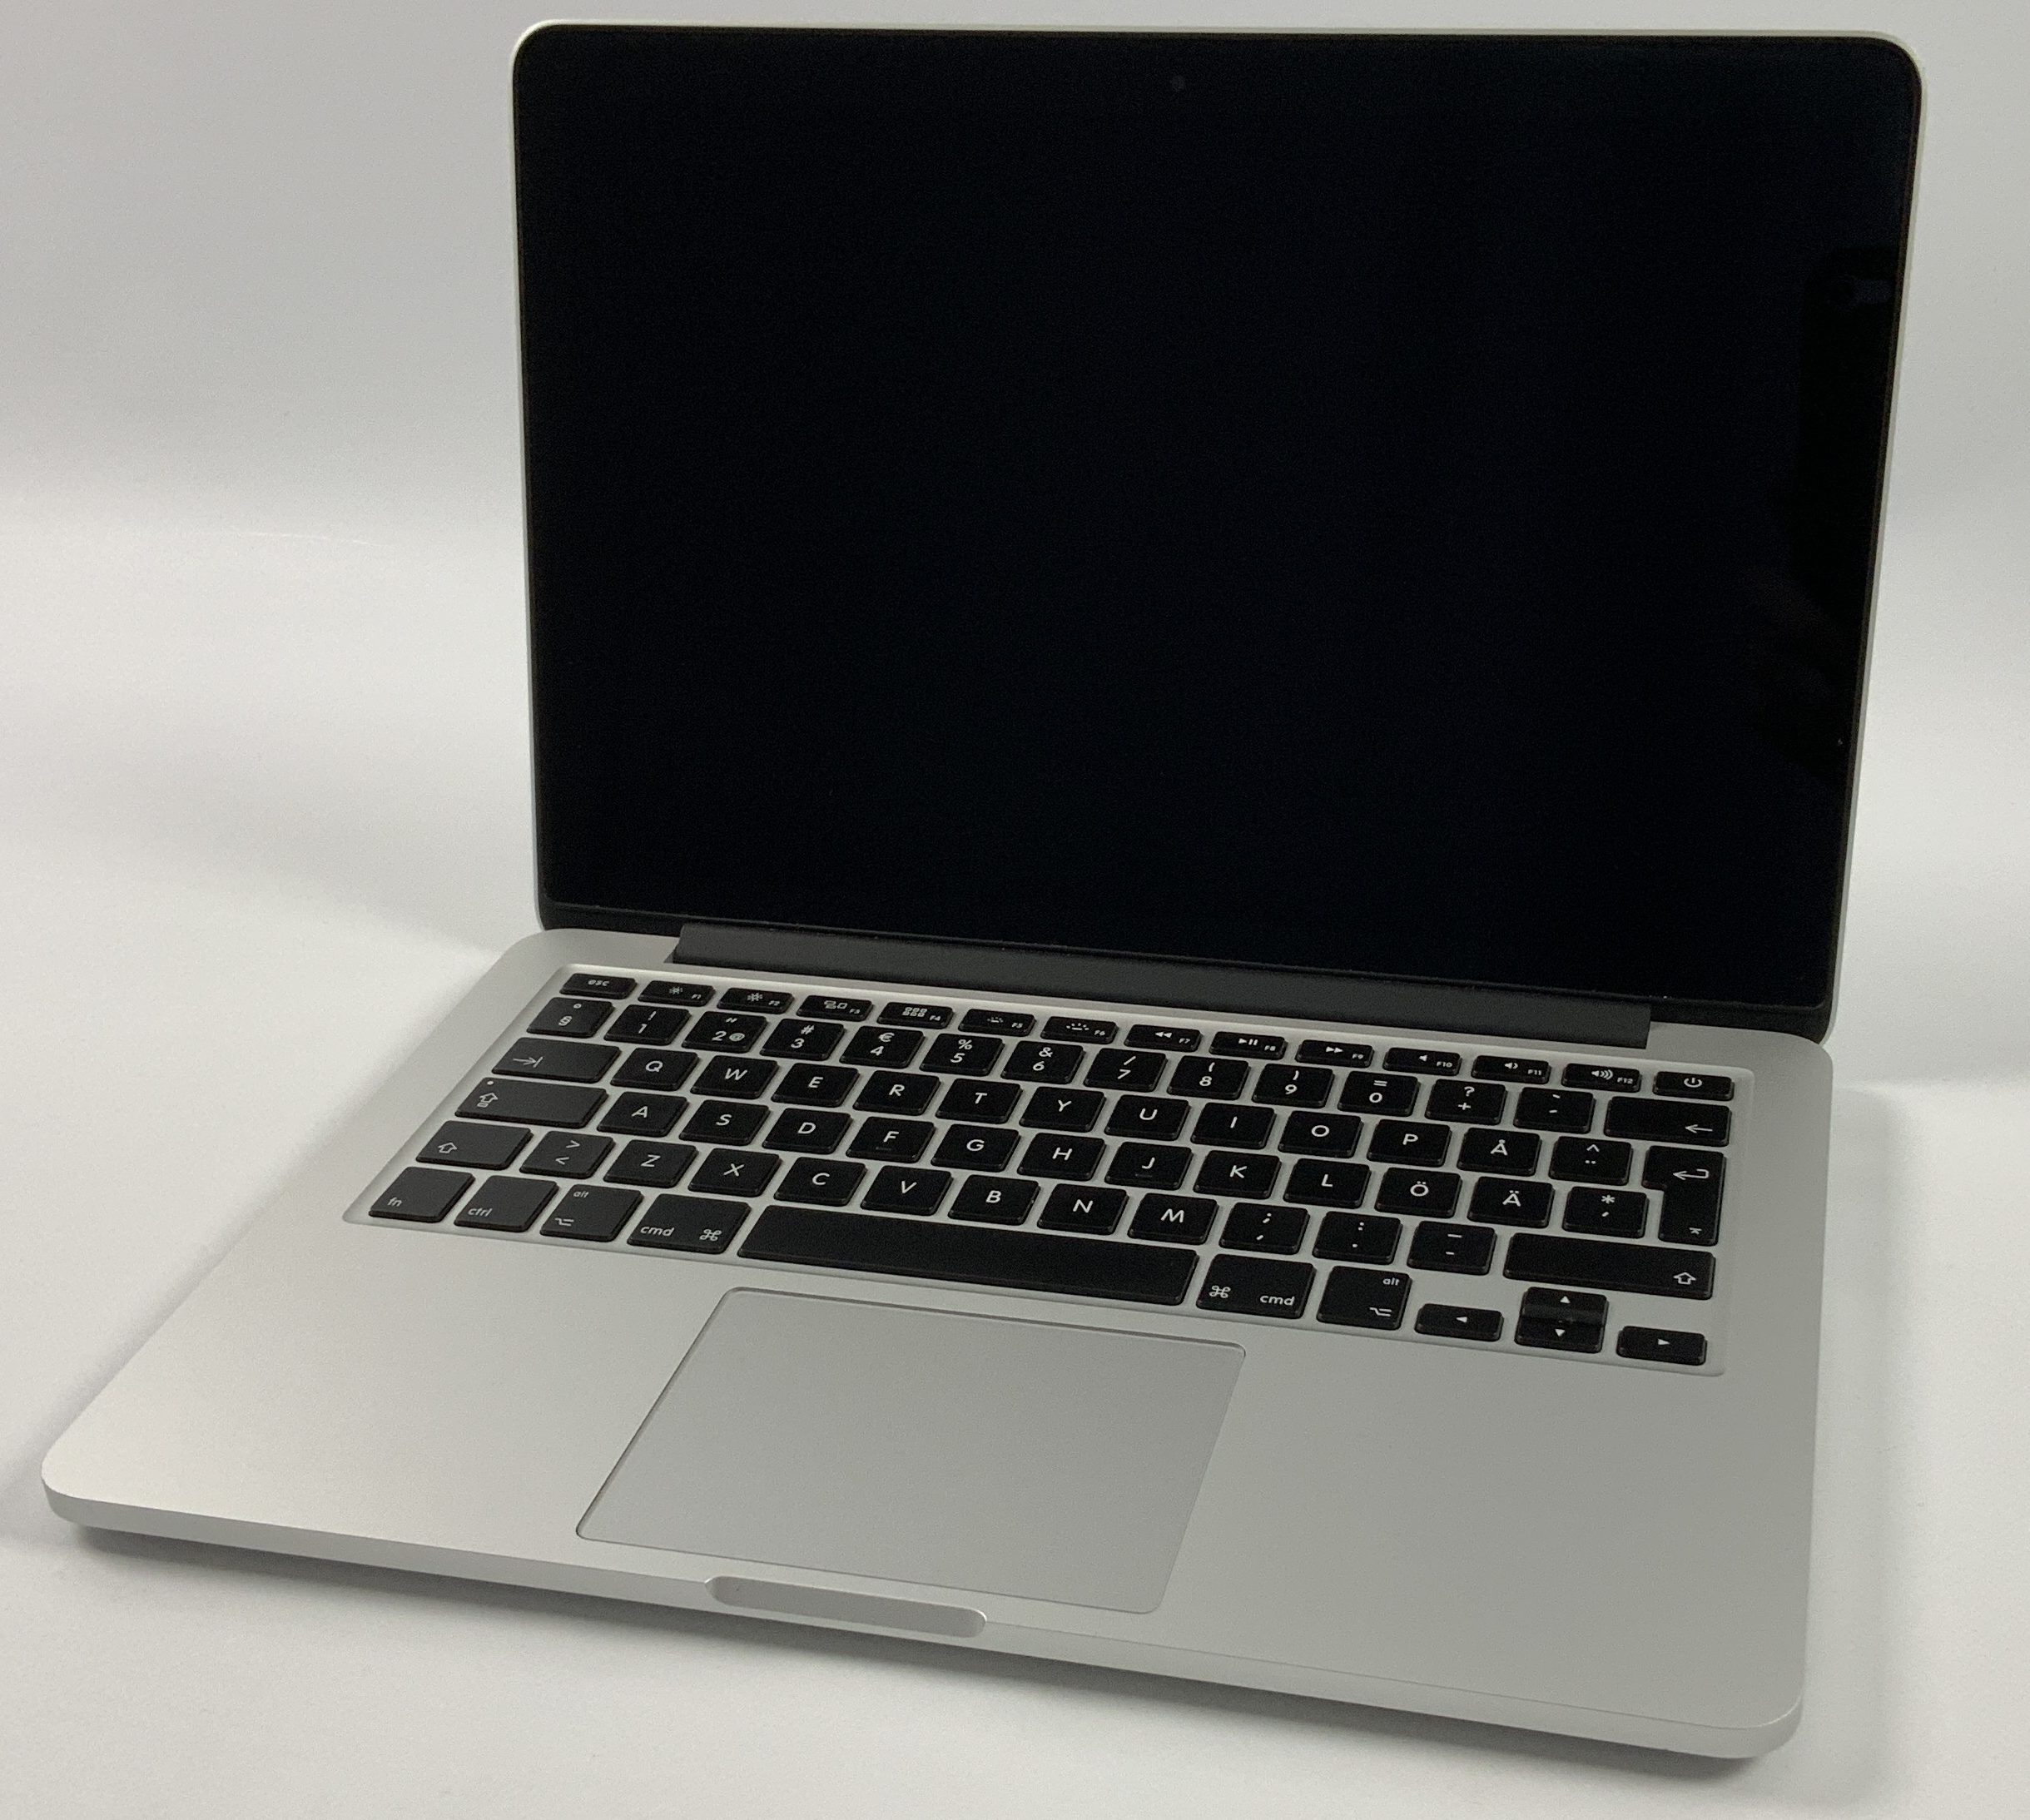 "MacBook Pro Retina 13"" Early 2015 (Intel Core i5 2.7 GHz 8 GB RAM 256 GB SSD), Intel Core i5 2.7 GHz, 8 GB RAM, 256 GB SSD, imagen 1"